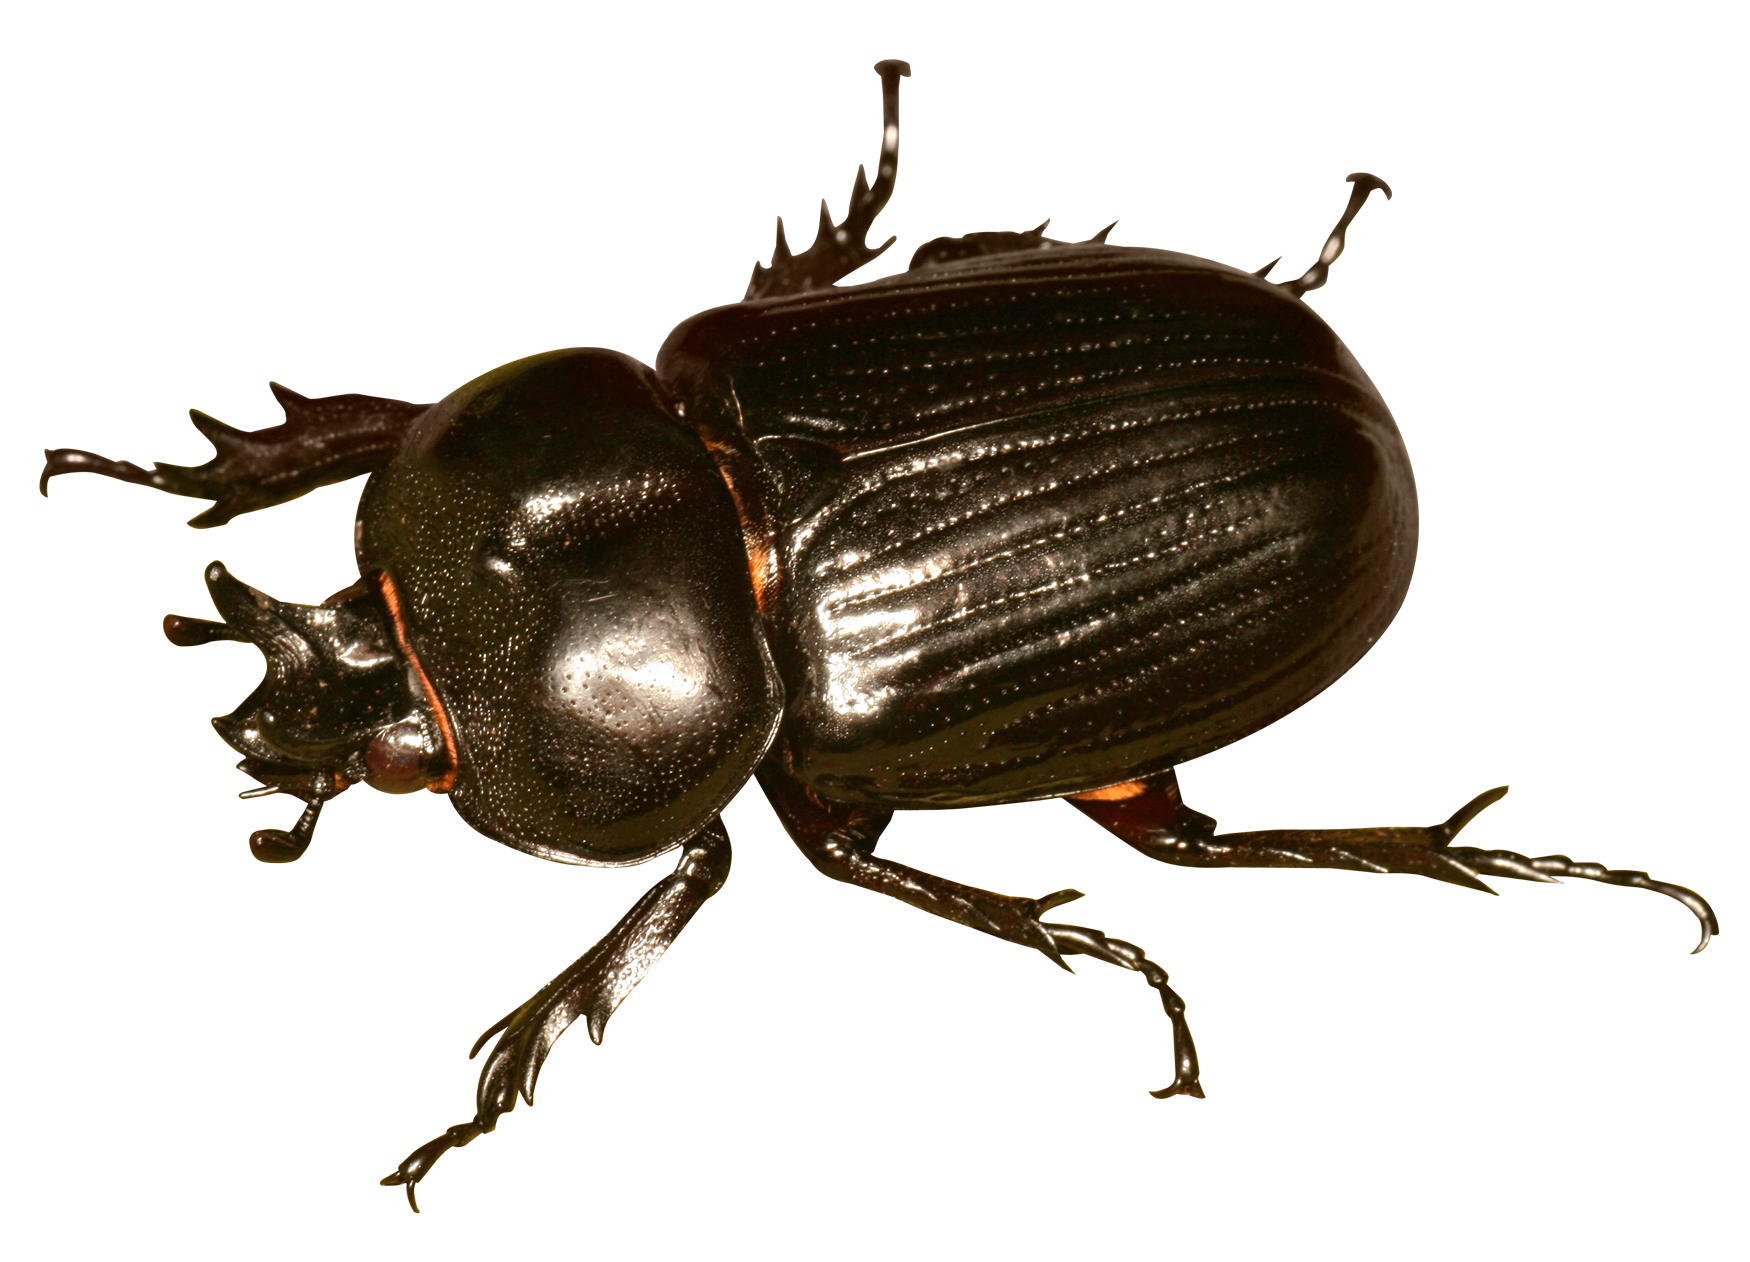 download transparent bug insect #116588979